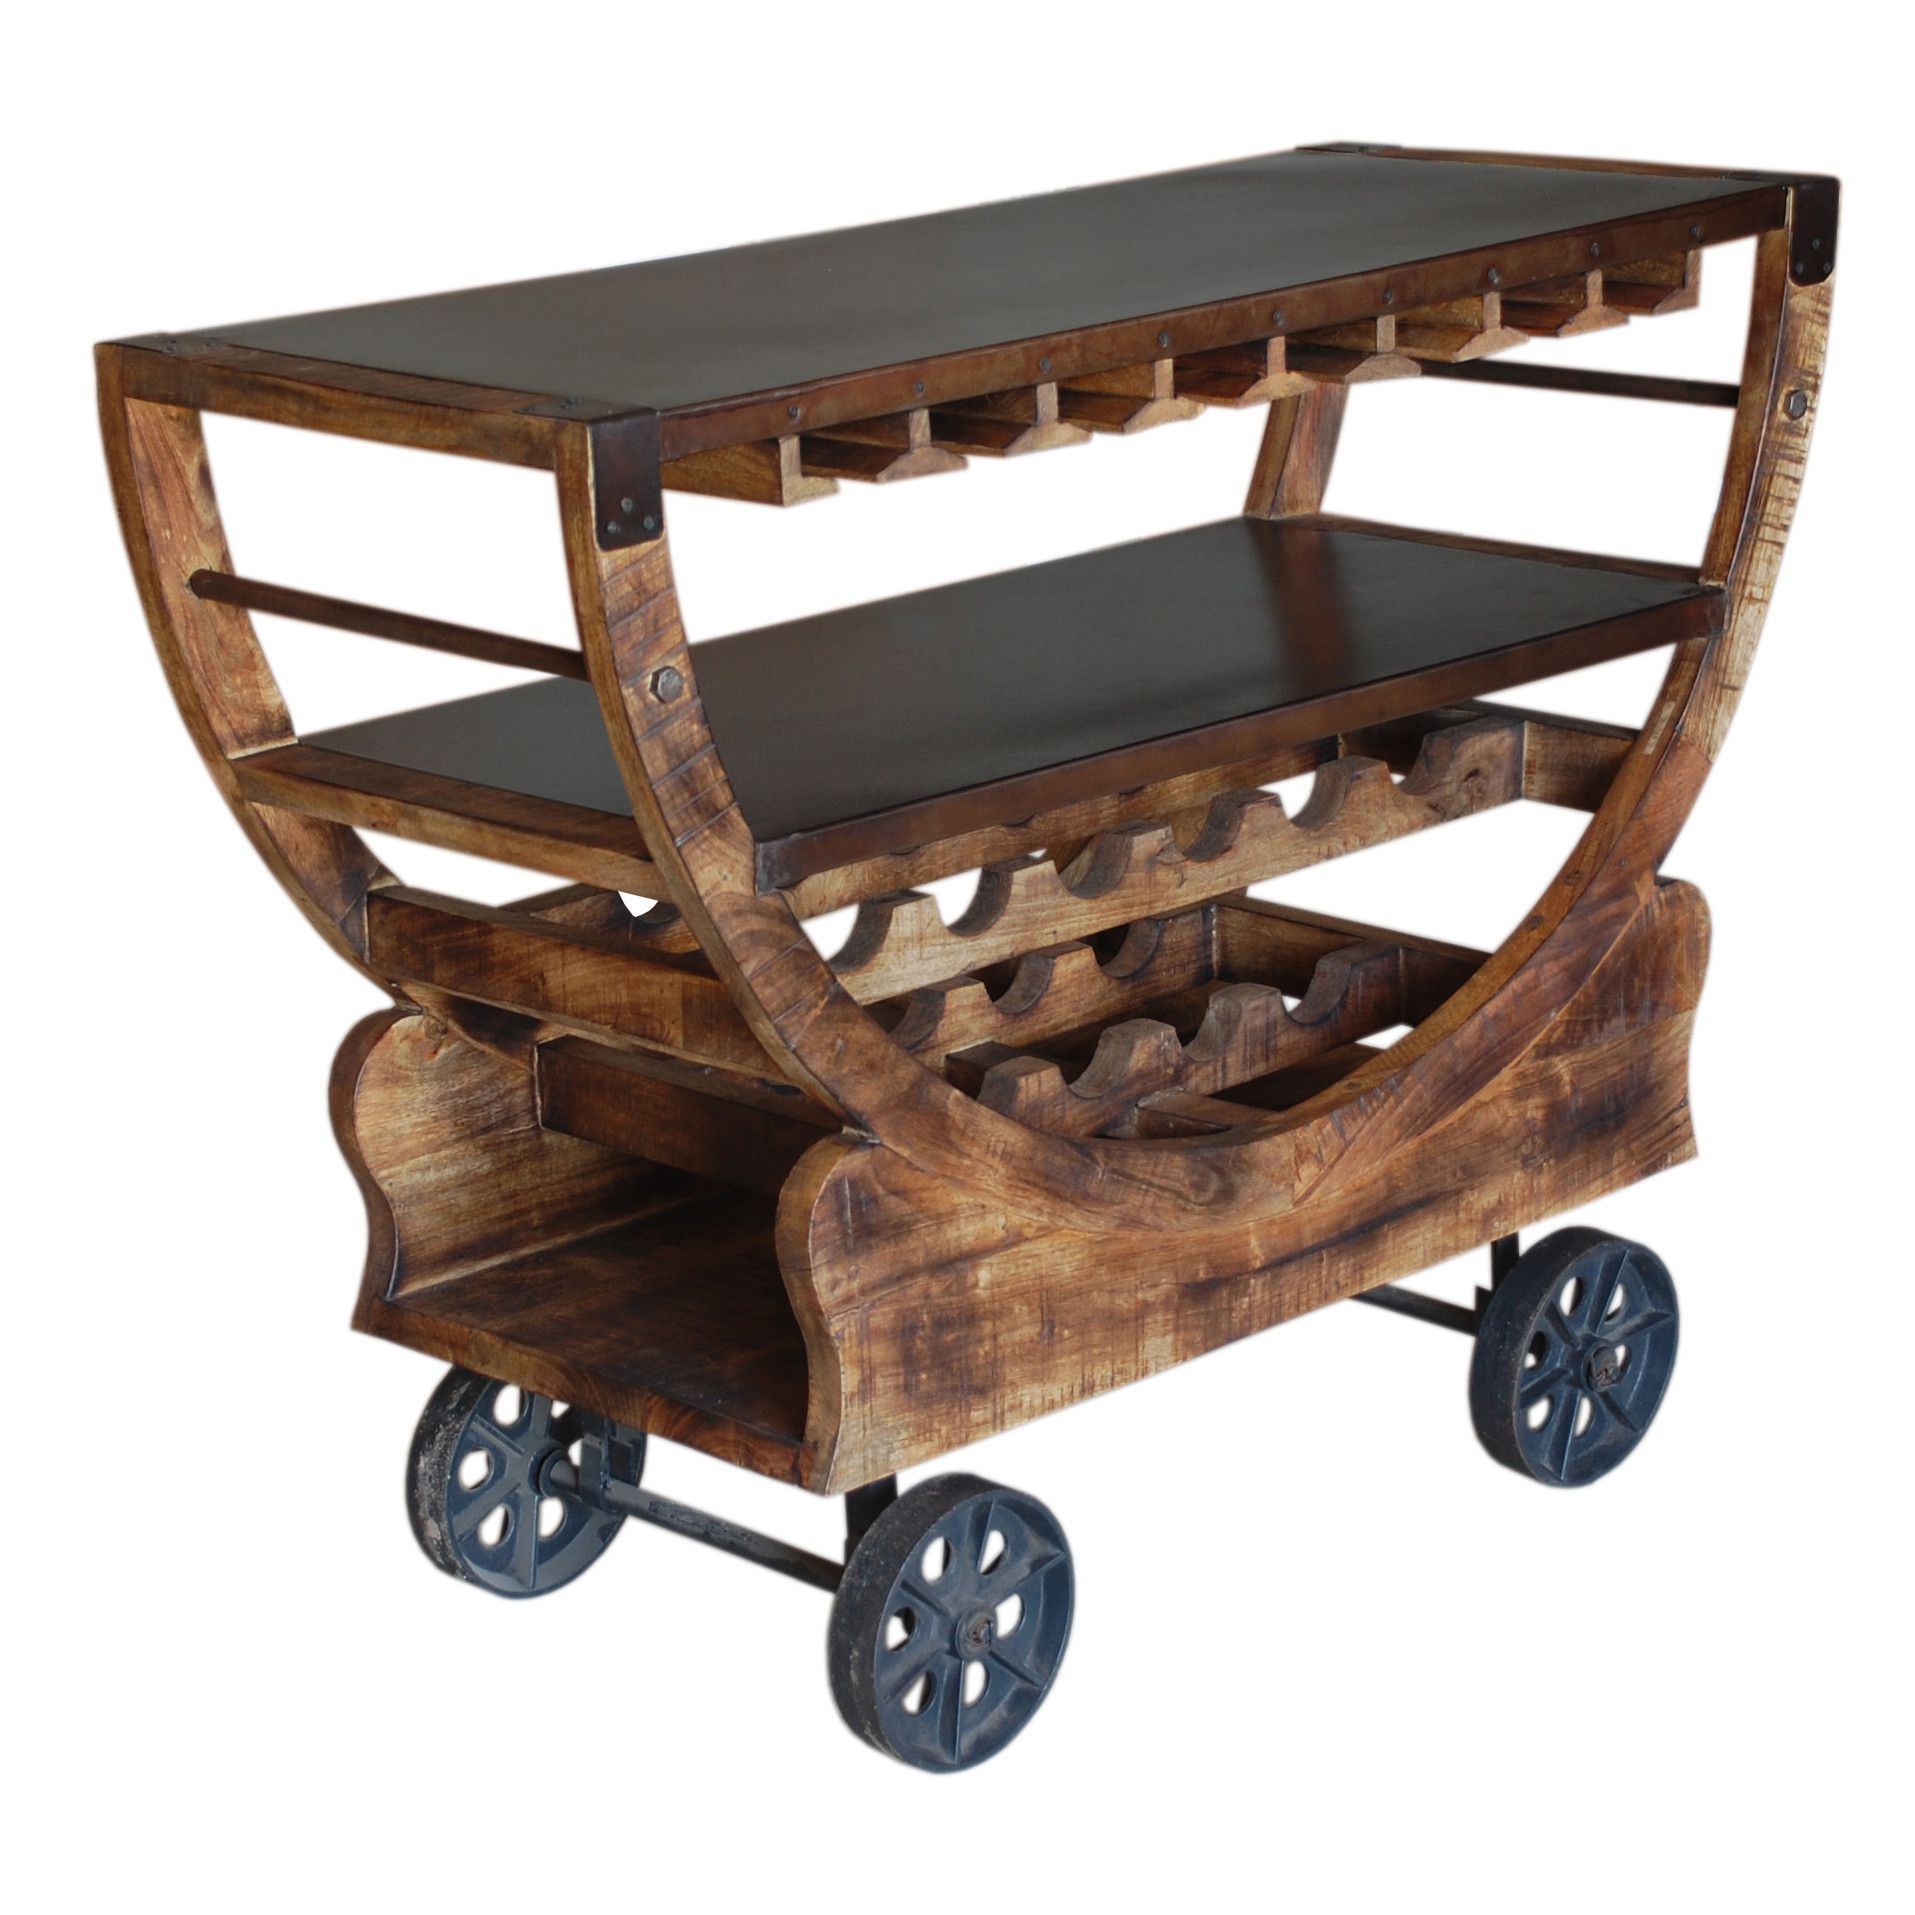 Lovely Perfect As A Home Bar Or Breakfast Station In Your Kitchen Or Dining Room,  This Charming Serving Cart Features 2 Shelves And A Castered Design.